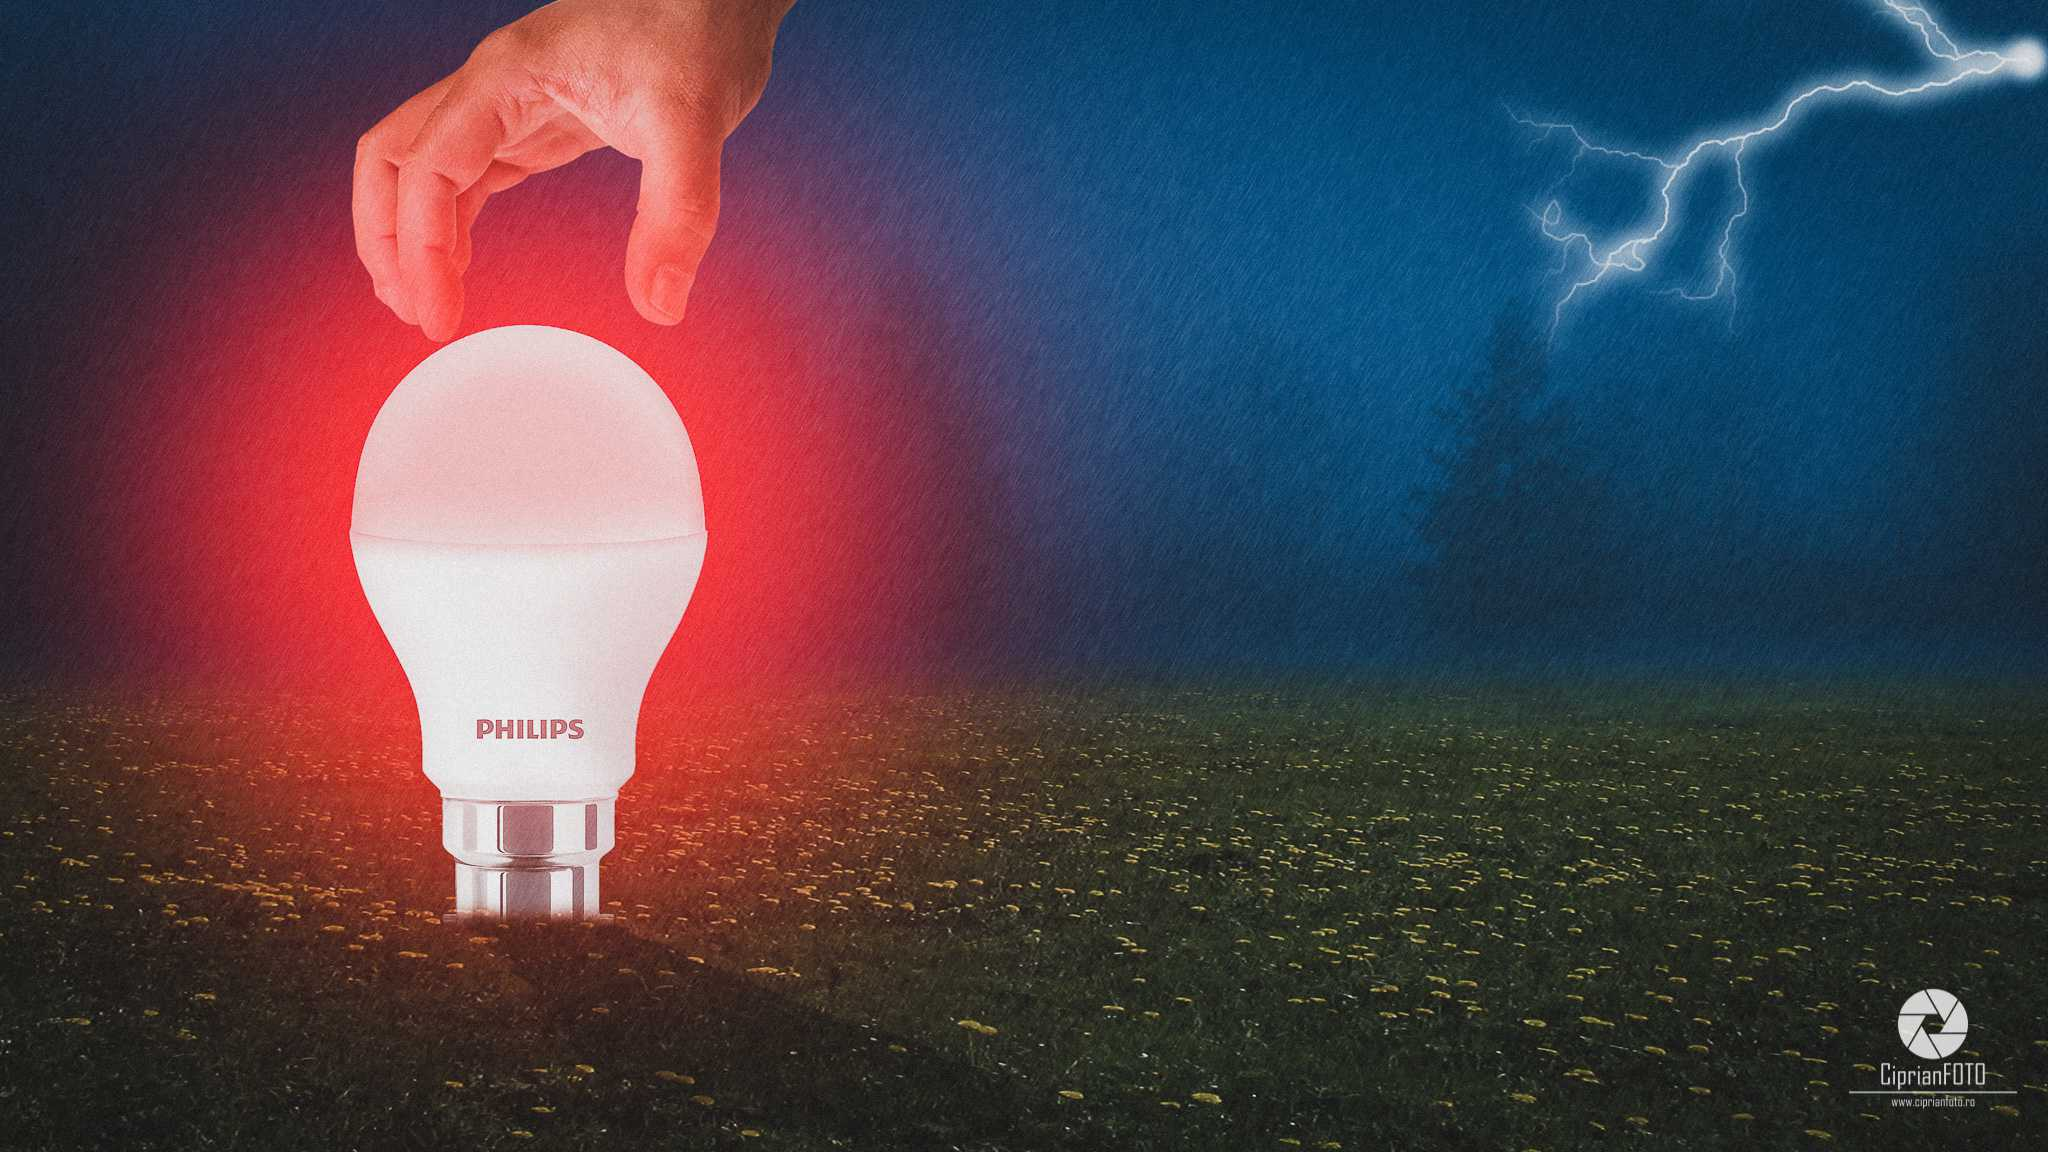 Philips LED Bulb, Photoshop Manipulation Tutorial, CiprianFOTO